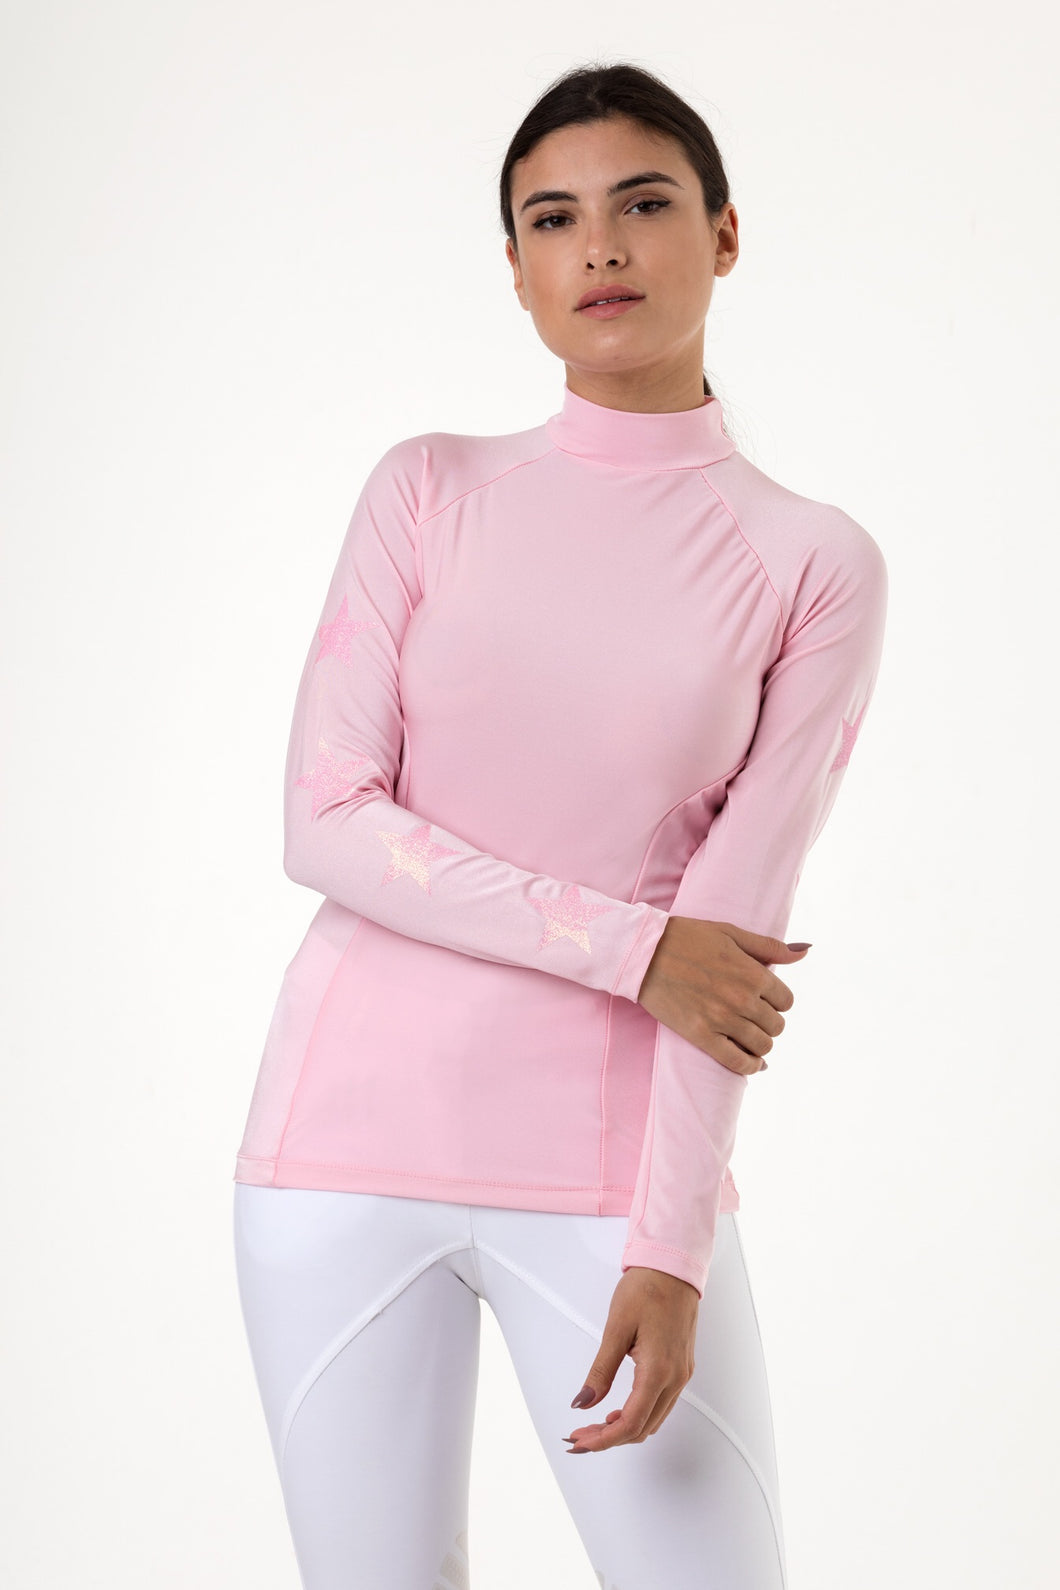 Baby Pink Understated Baselayer